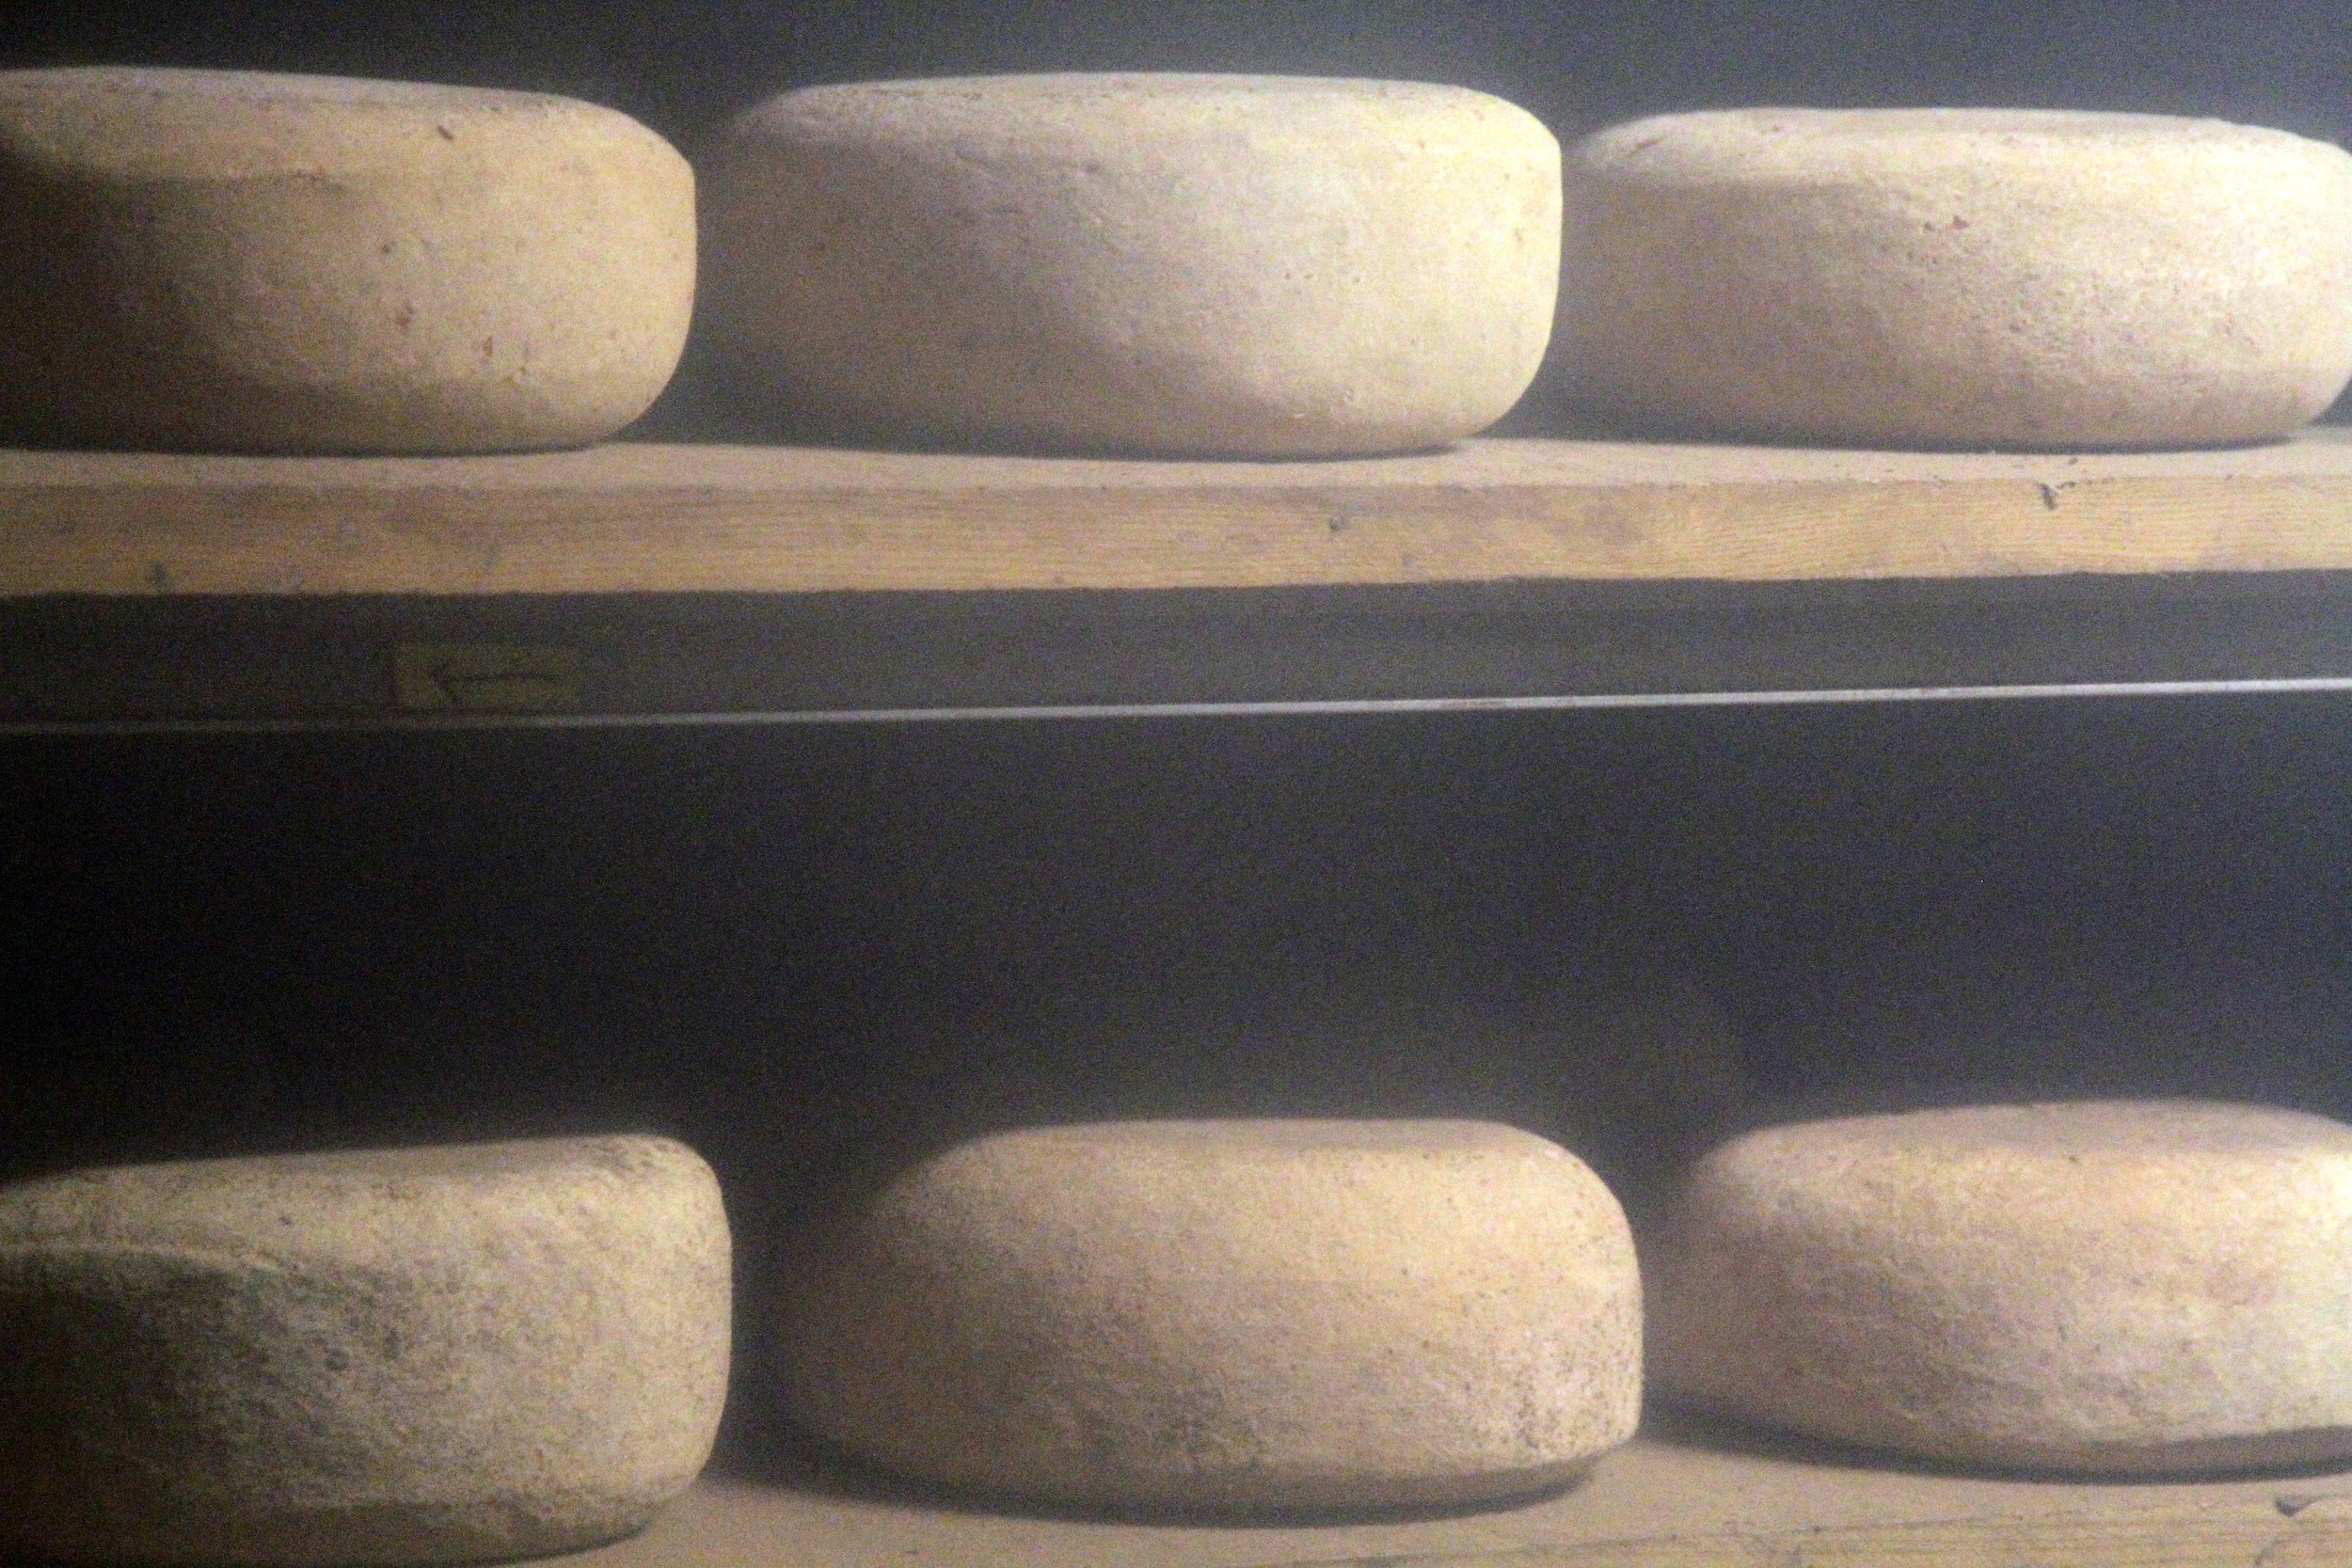 Cheese aging in Valley Shepherd's cheesecave. Take the tour and you'll see this too!